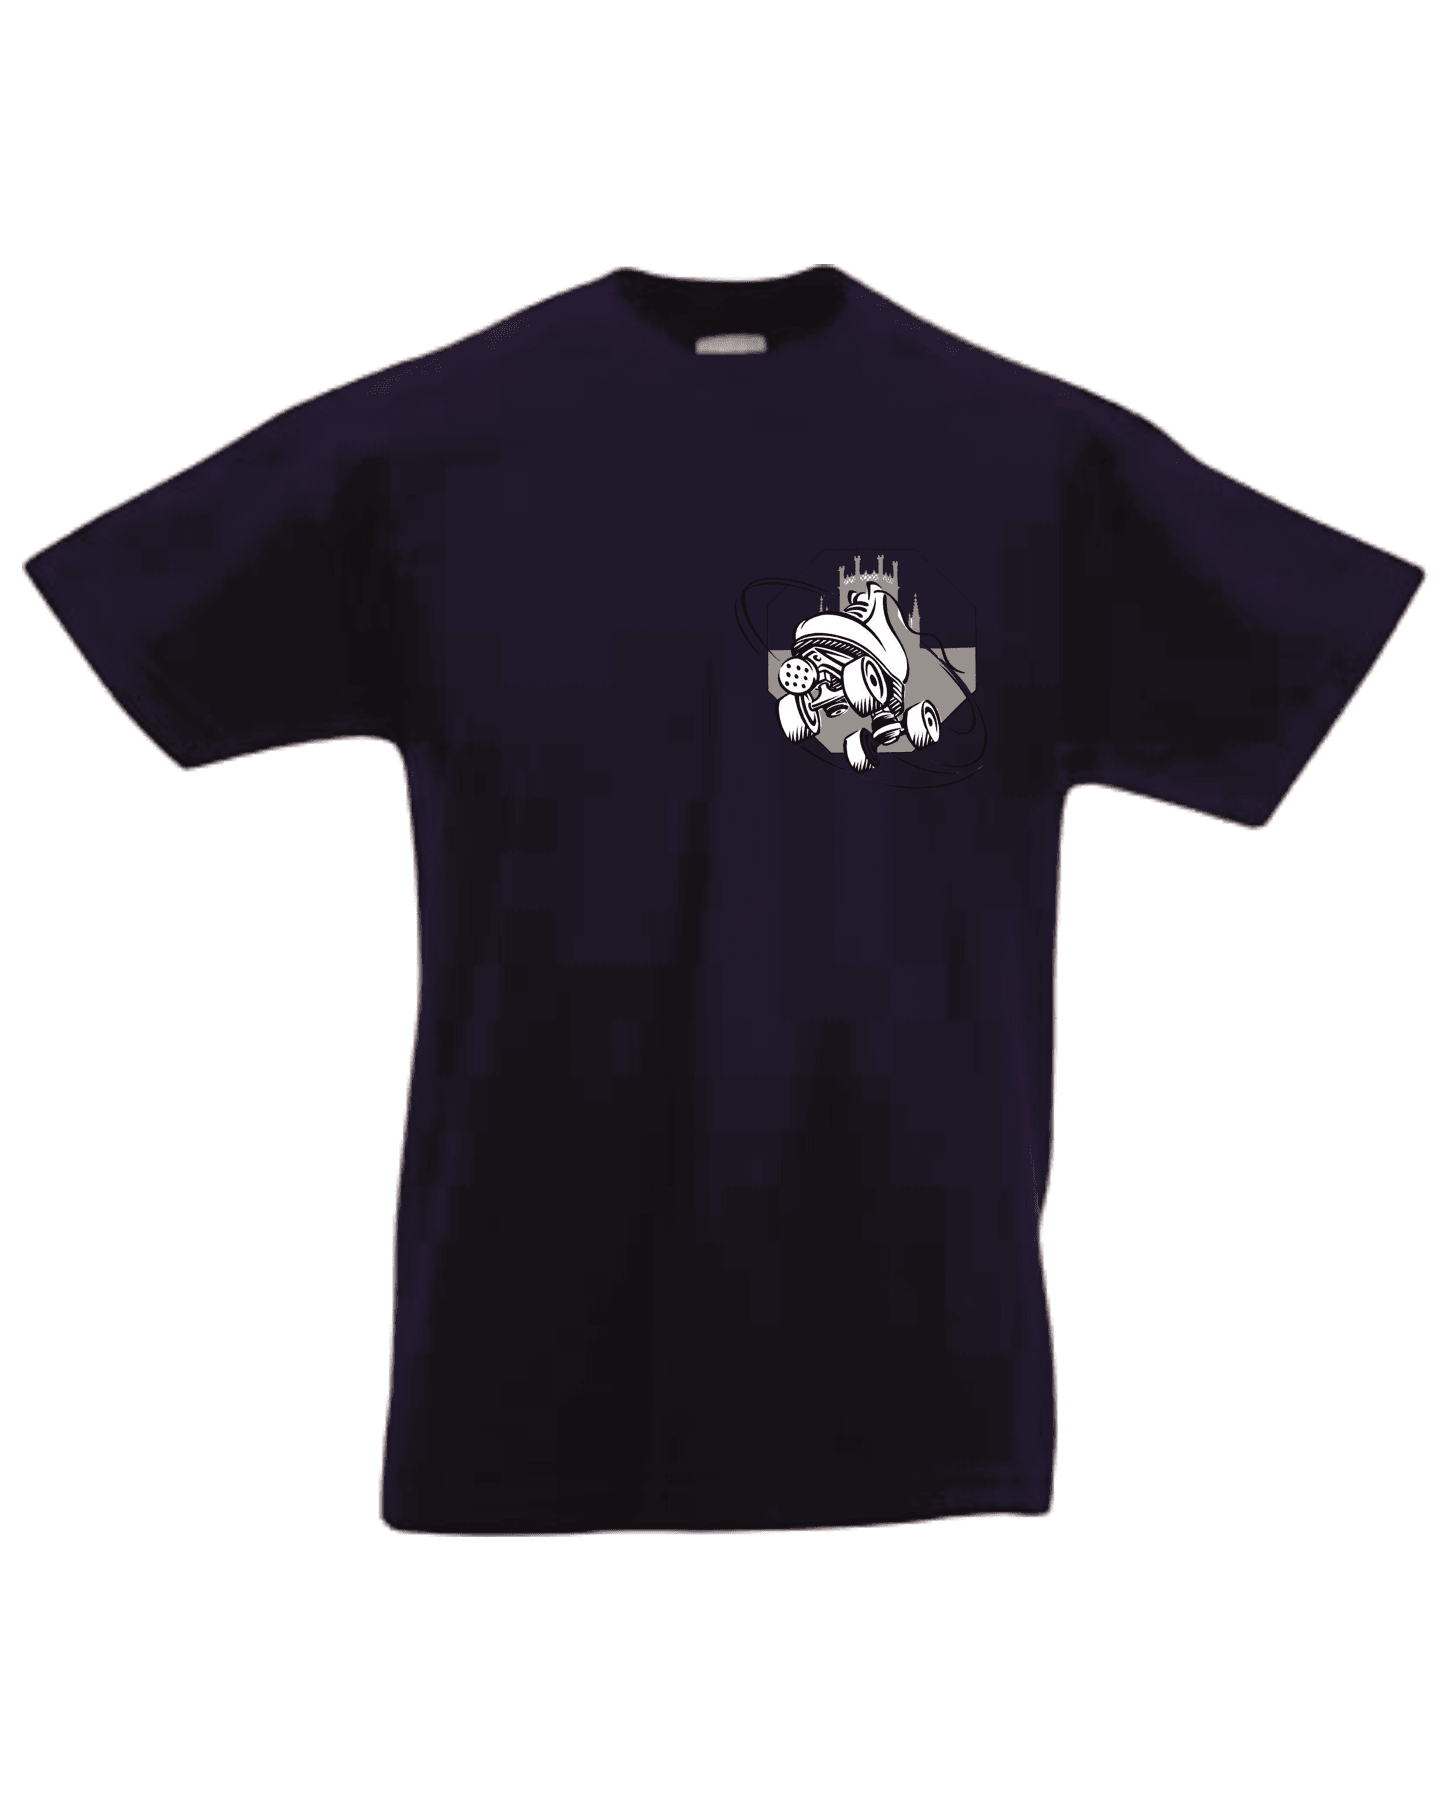 Ely Roller Skating Childrens T-shirt